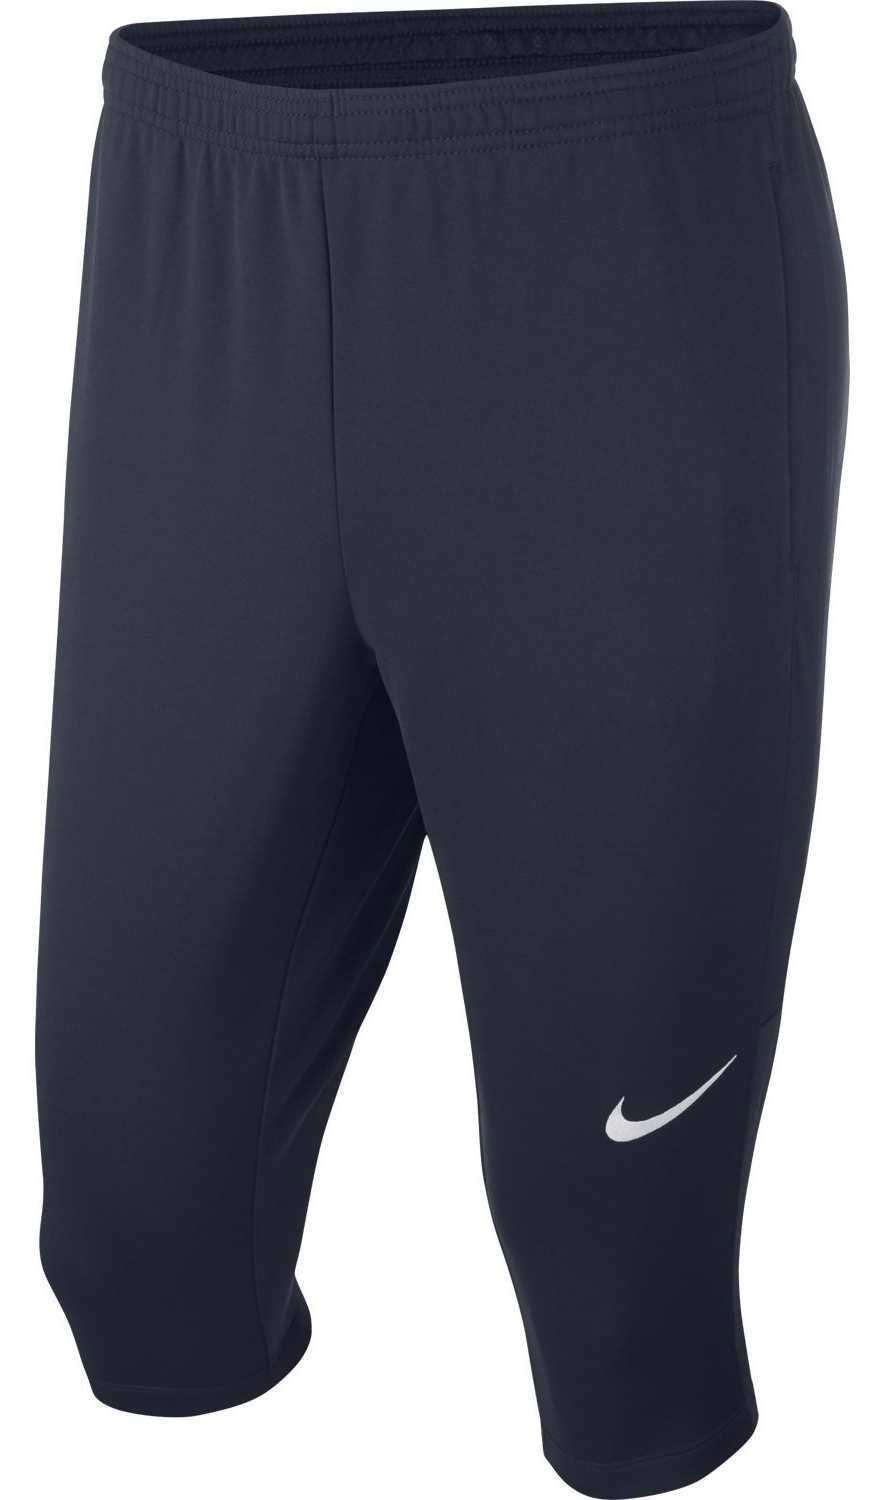 3/4 PANT FIT ADULTE NIKE PLM CONFLANS